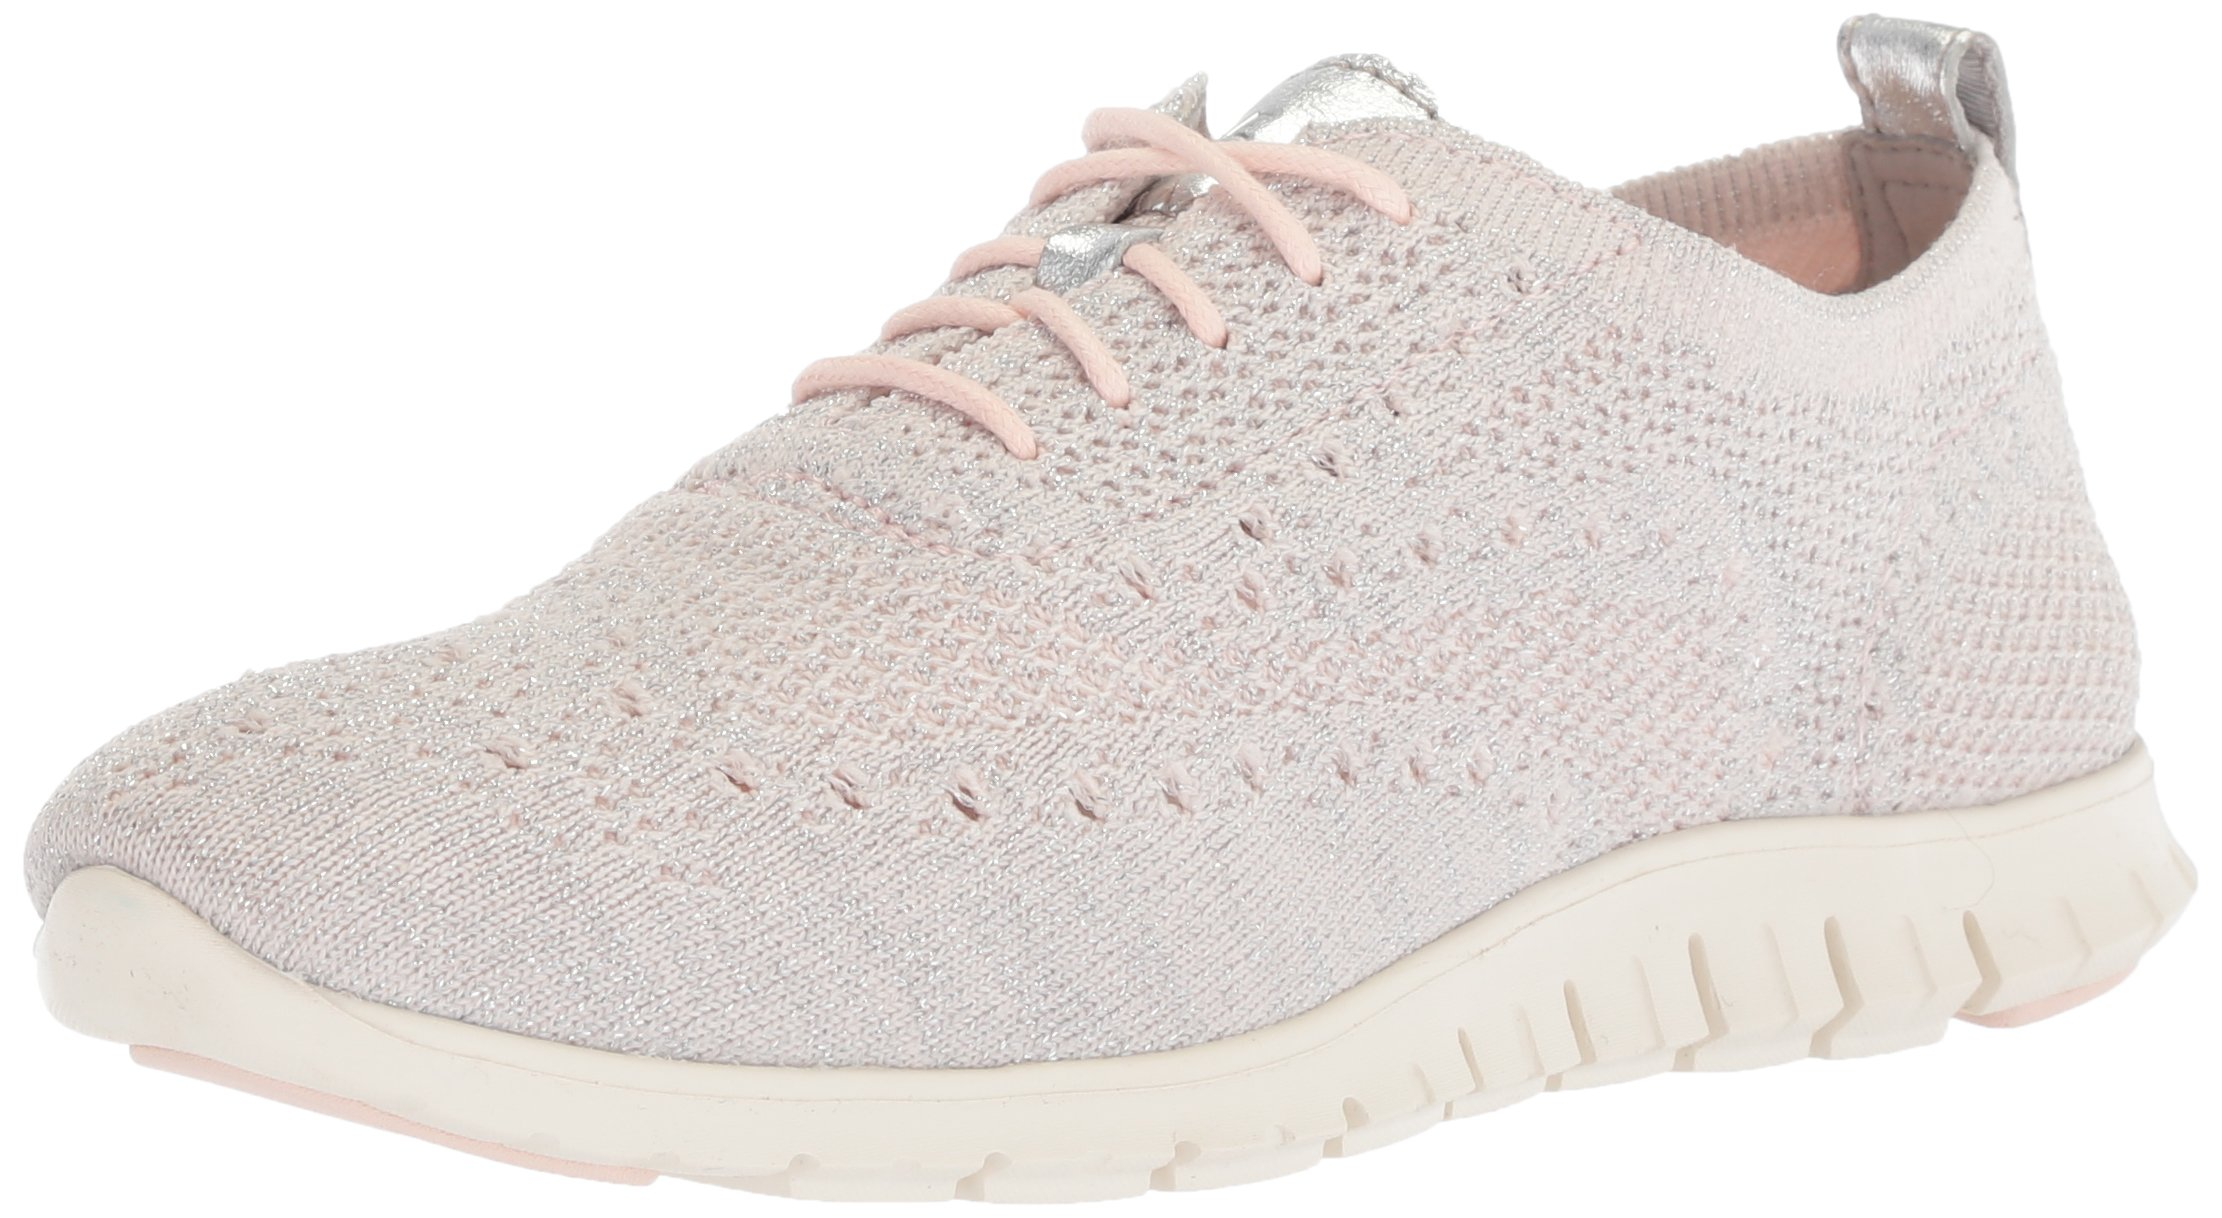 Cole Haan Women's Zerogrand Stitchlite Oxford, Peach Blush, 8.5 B US